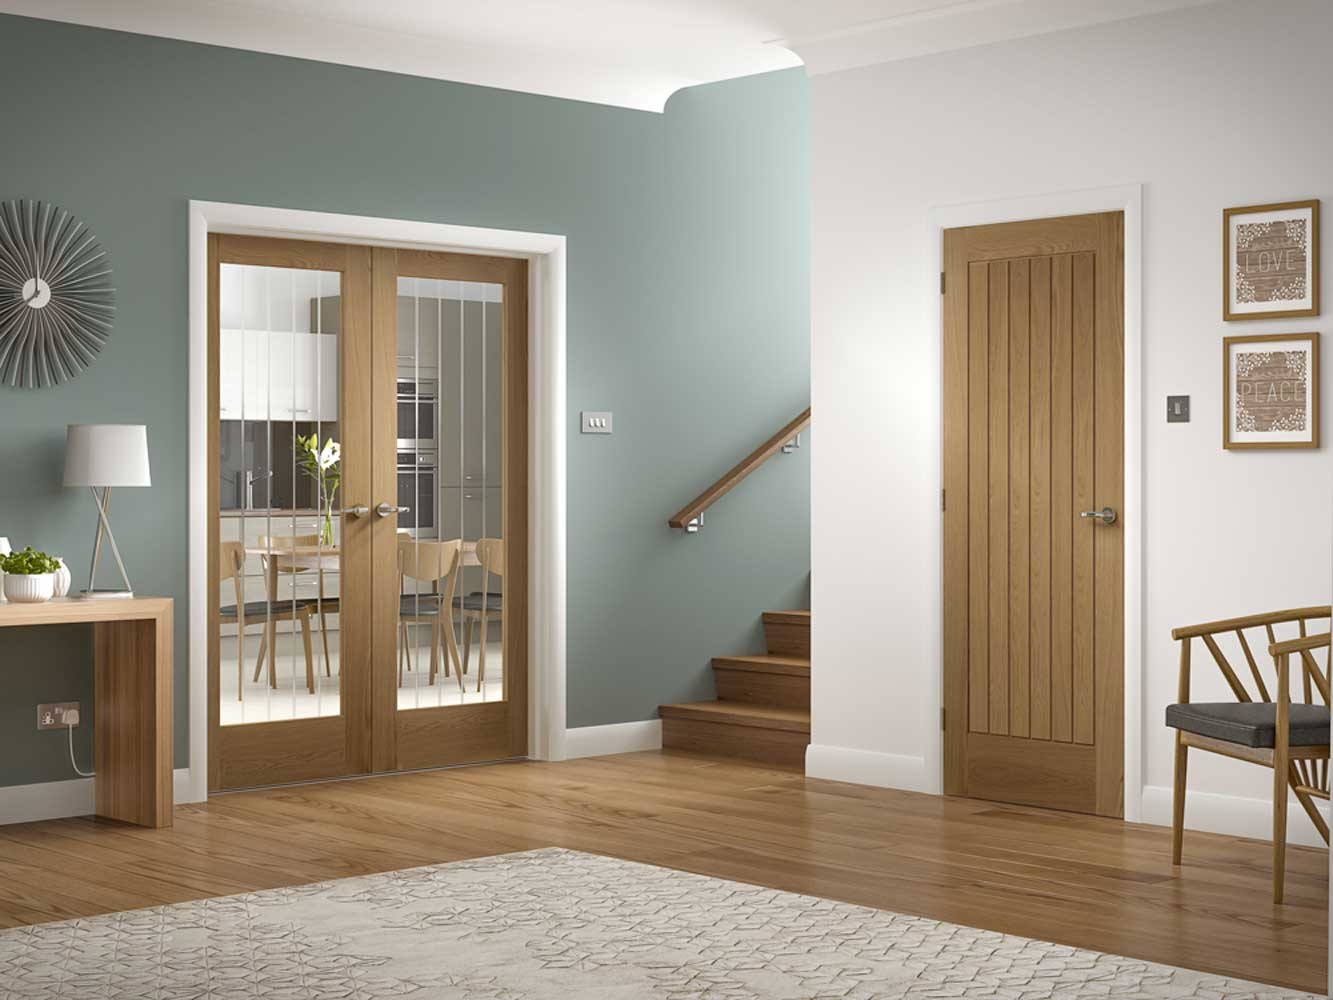 39 suffolk glazed 39 oak interior door pair for Oak french doors